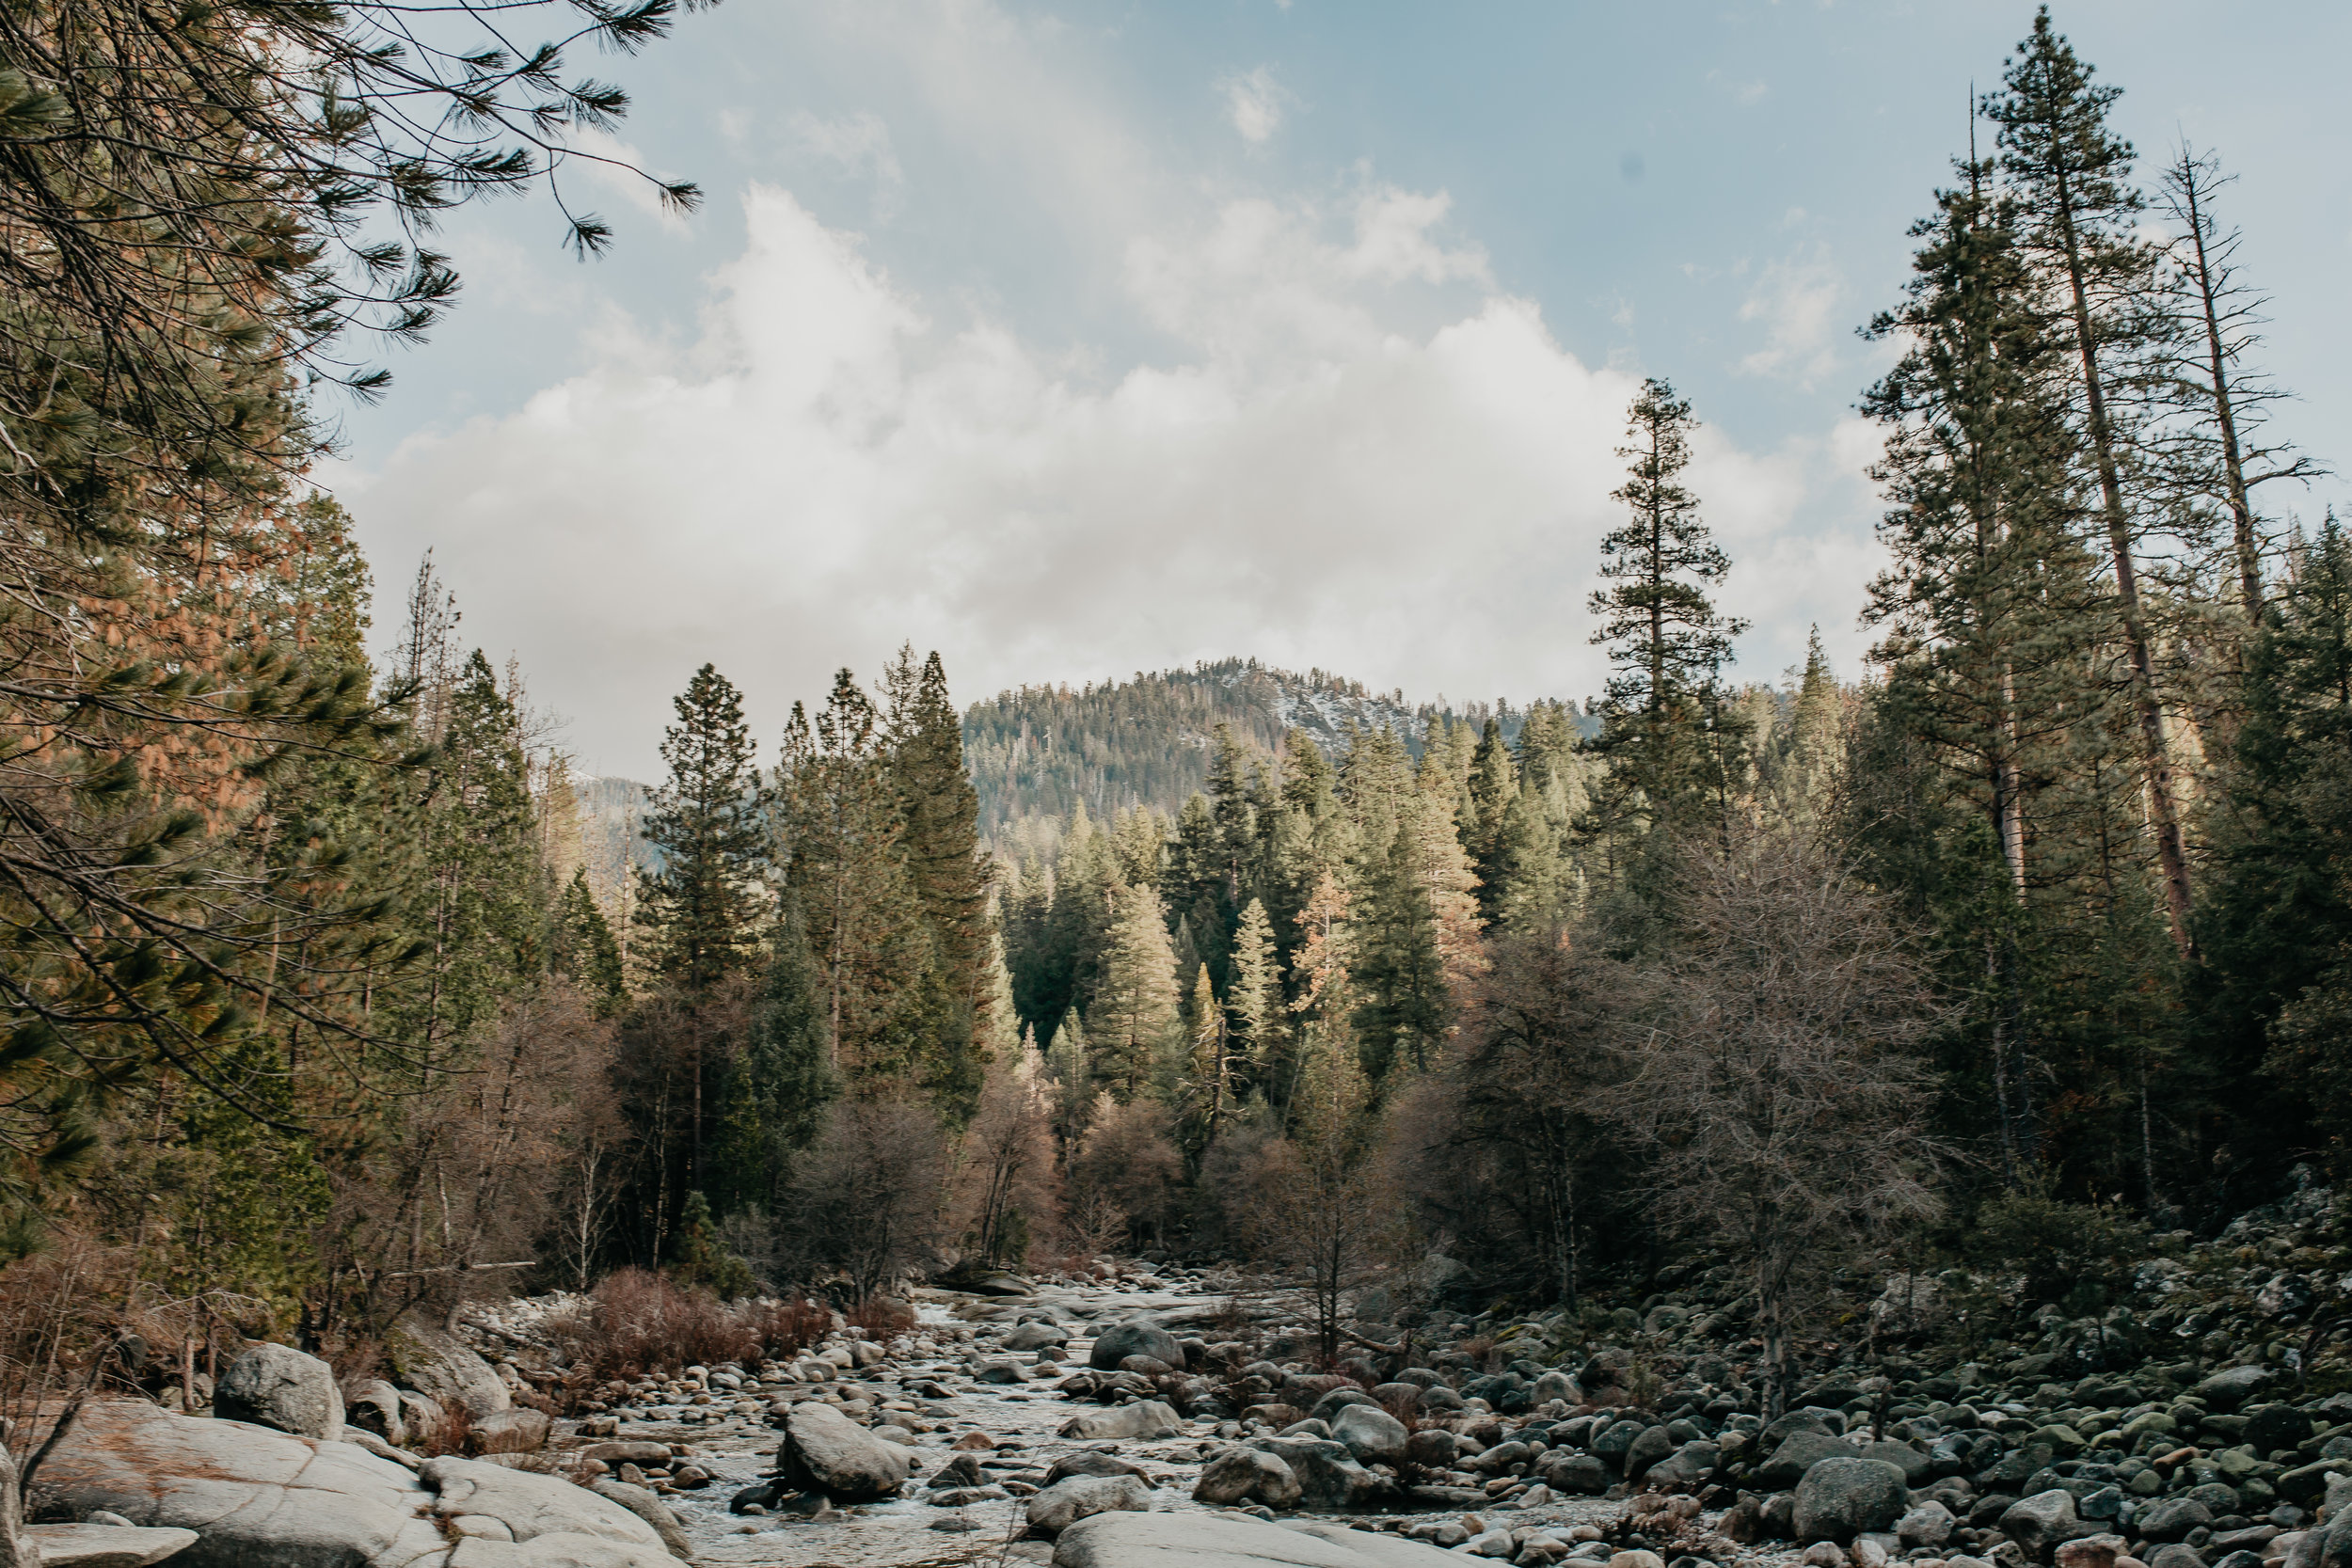 nicole-daacke-photography-yosemite-riverside-adventurous-engagement-photos-in-yosemite-national-park-elopement-photographer-weddings-travel-destination-wedding-eloping-elope-pine-forest-42.jpg